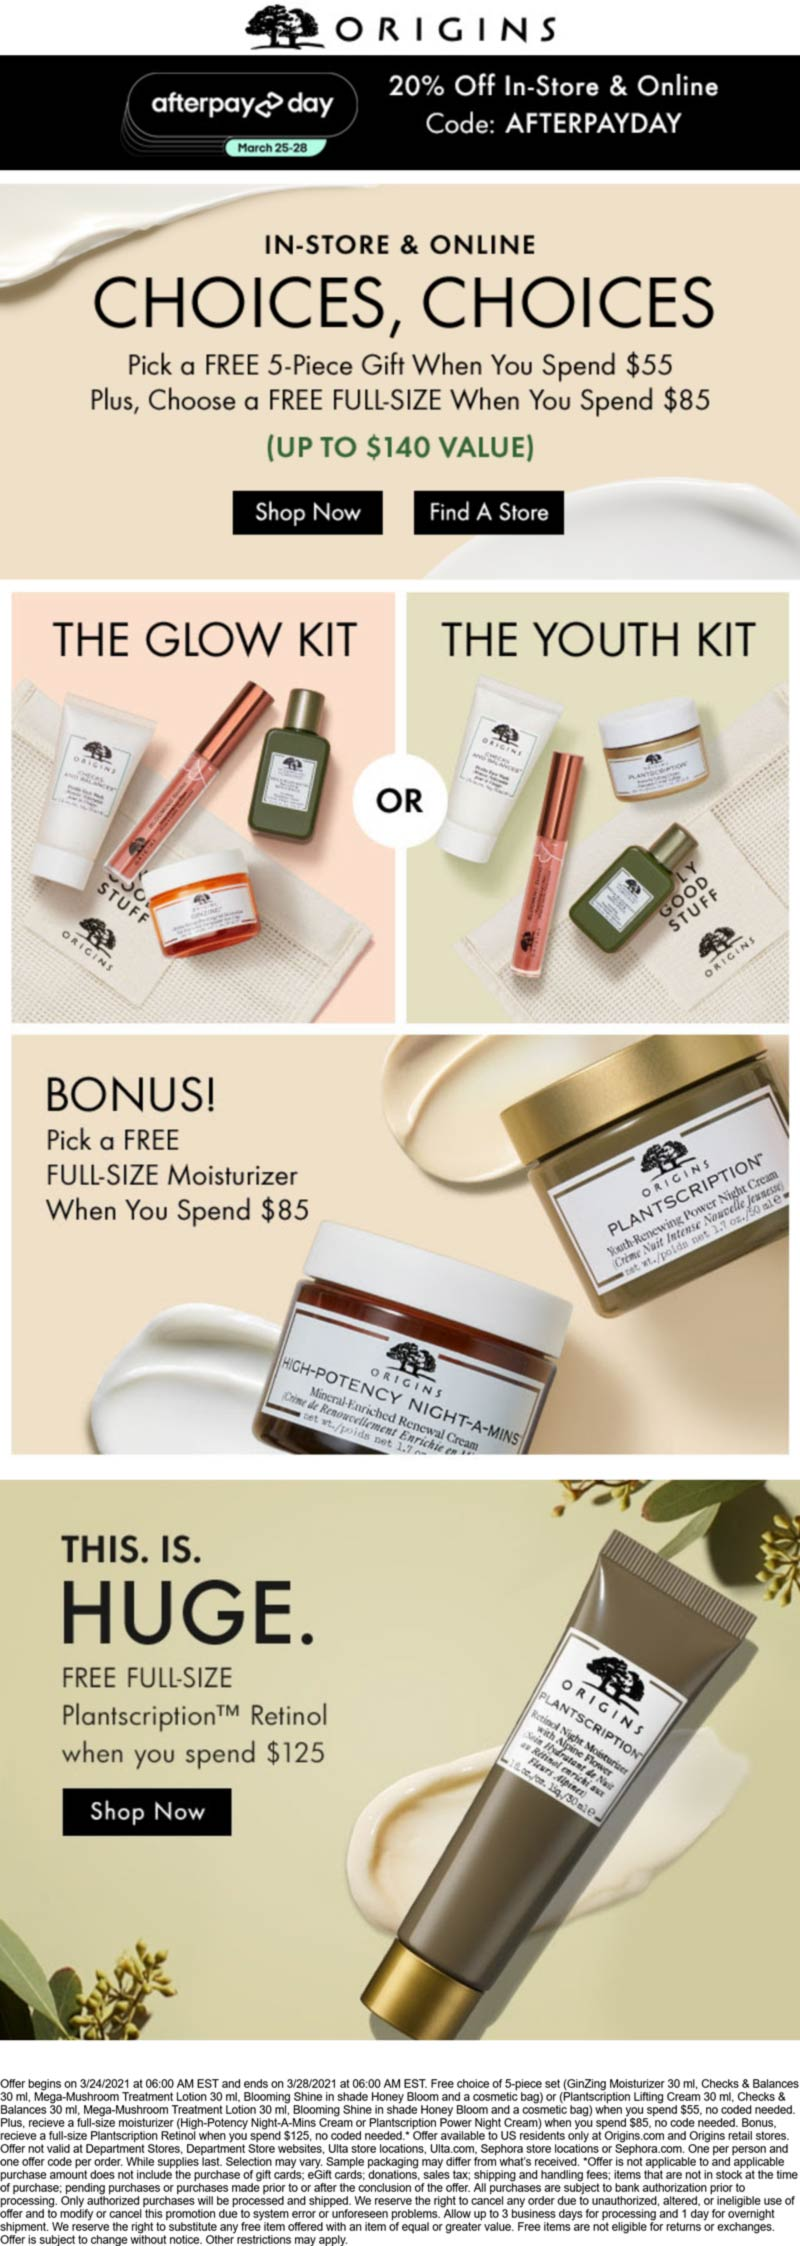 Origins stores Coupon  20% off + free 5pc set, full size & more on $55 spent at Origins, or online via promo code AFTERPAYDAY #origins